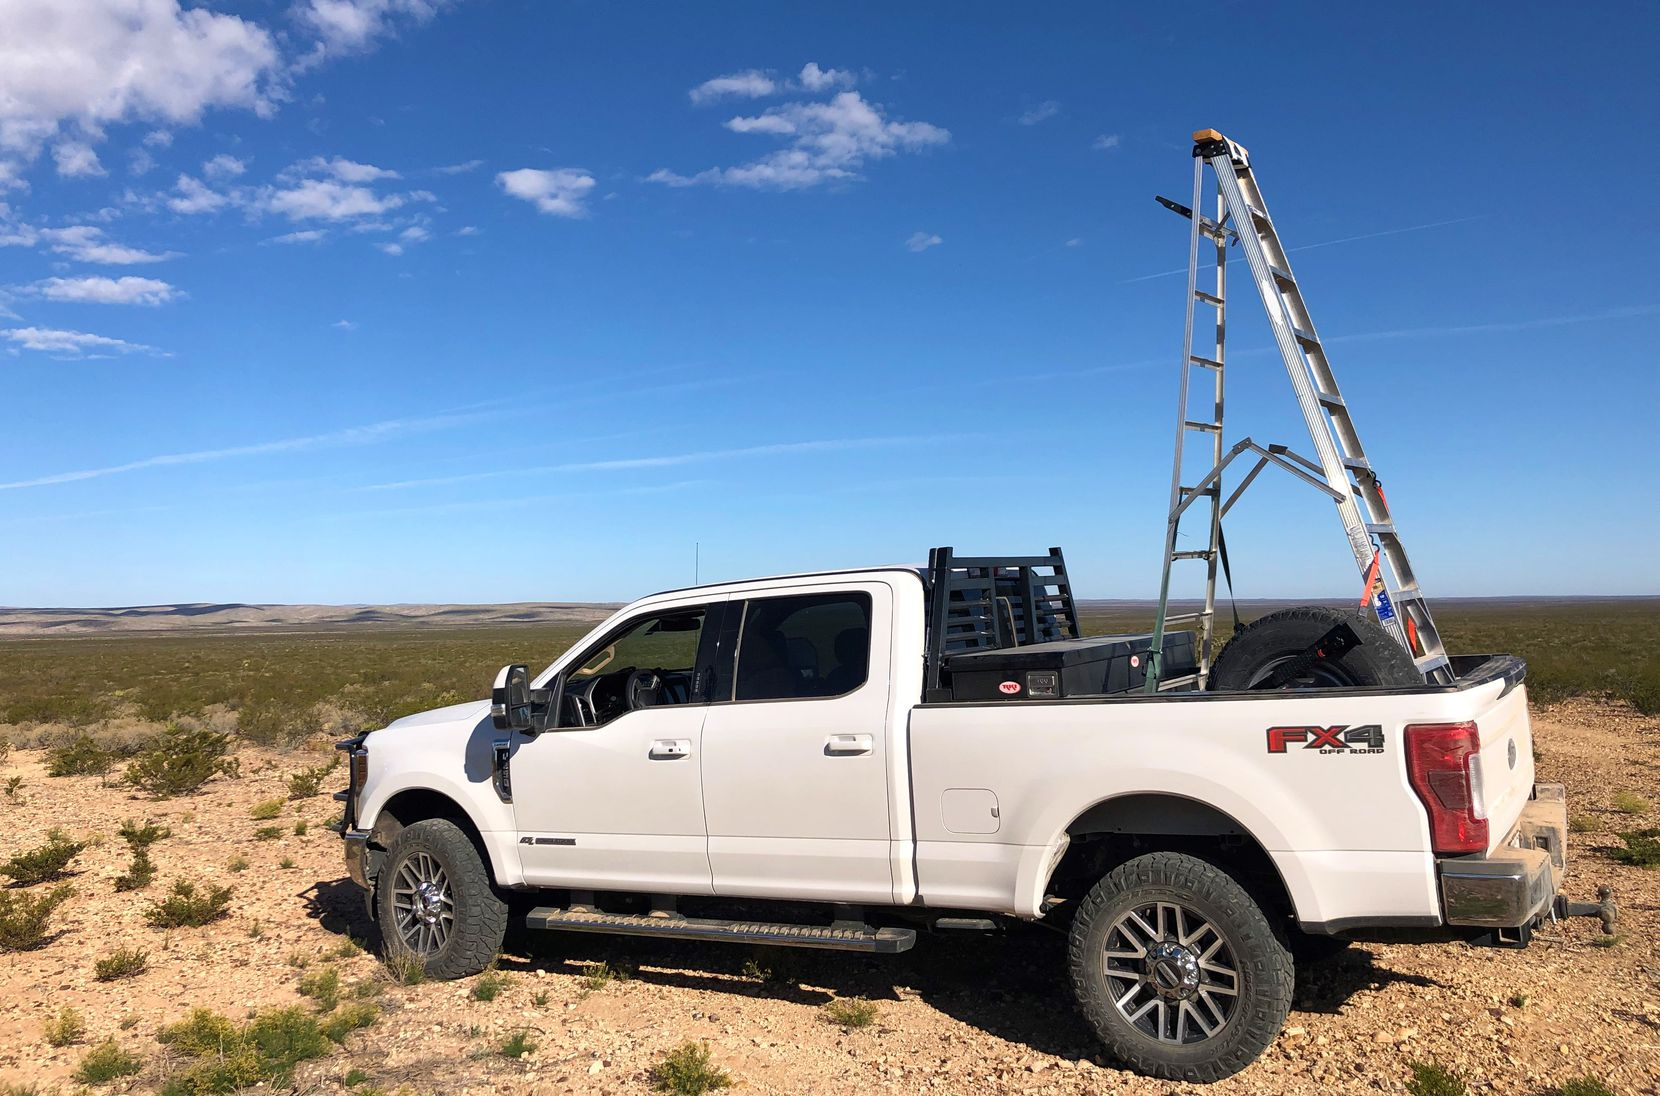 Greg Simons relied on a makeshift spotting platform fashioned from a 12-foot step ladder to provide a clearer view of the brushy Trans-Pecos landscape.